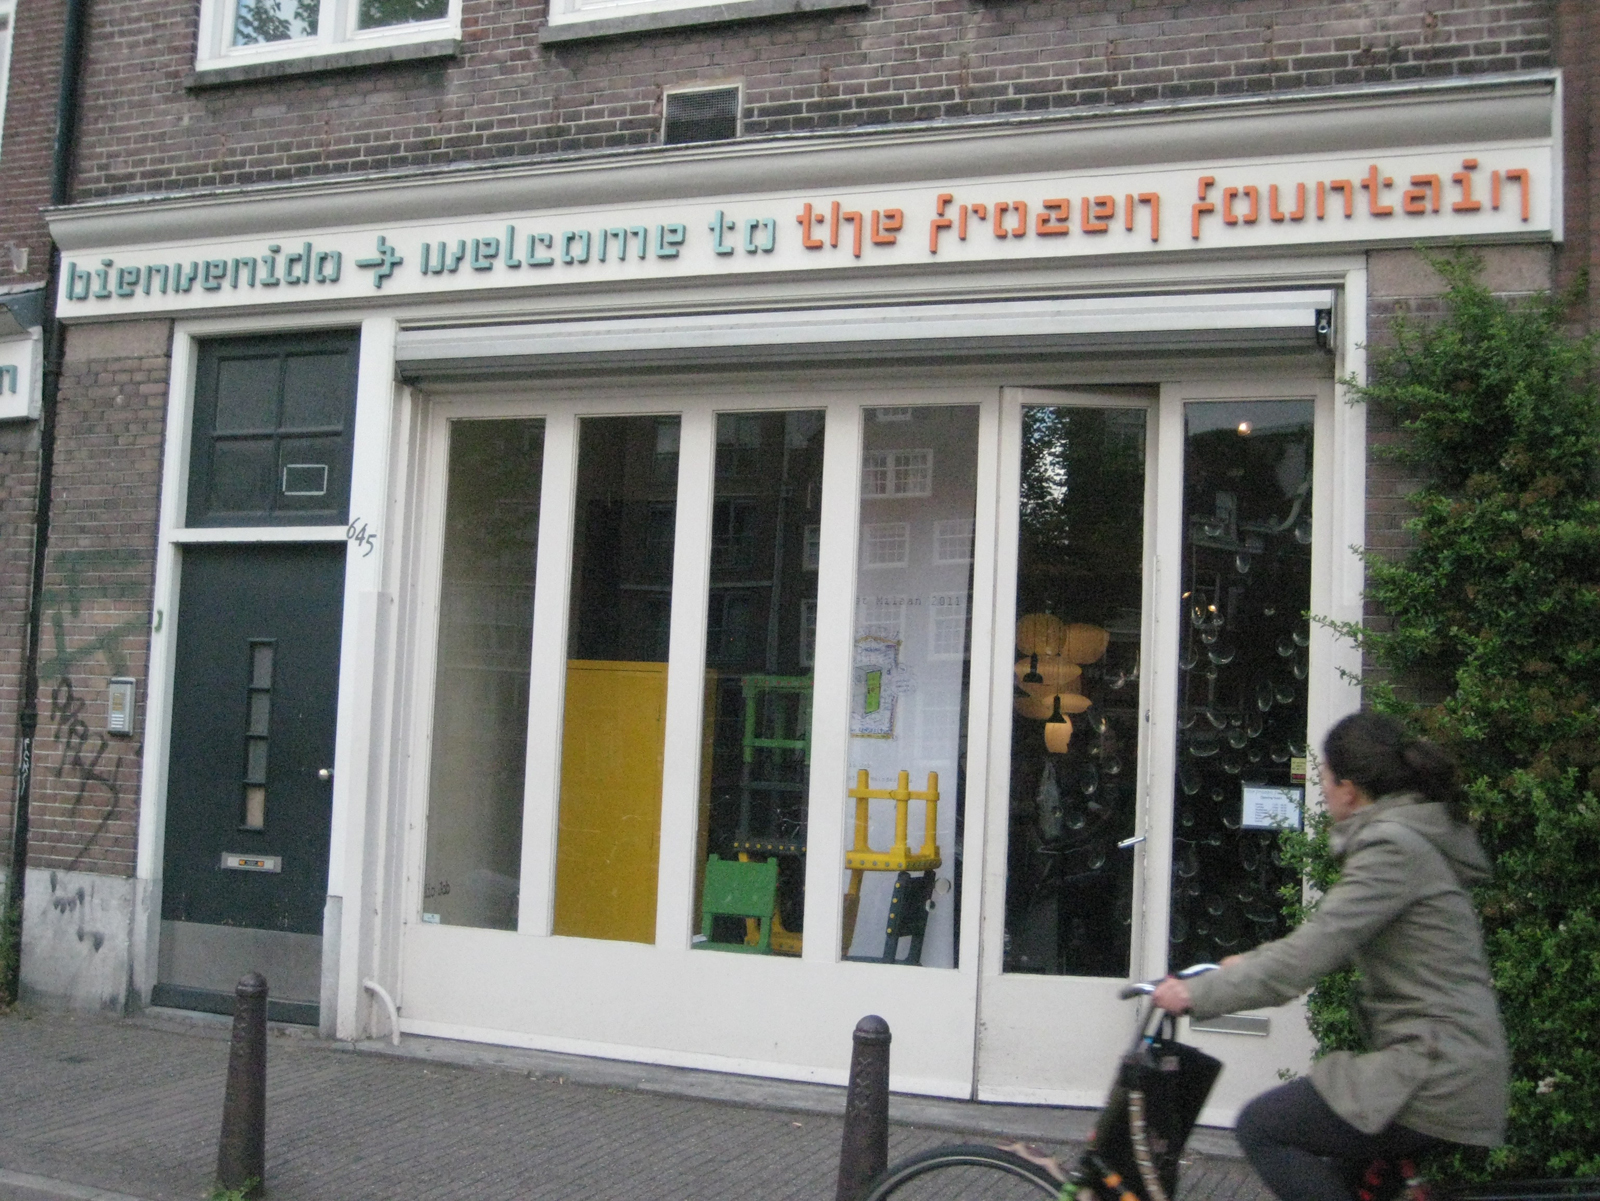 """Welcome to the <a href=""""http://www.dwell.com/articles/the-frozen-fountain.html"""">Frozen Fountain</a>! Situated in a sweet spot on the Prinsengracht ('Prince's Canal), this <a href=""""http://www.frozenfountain.nl/"""">shop</a> is absolutely a must-visit. It's a"""